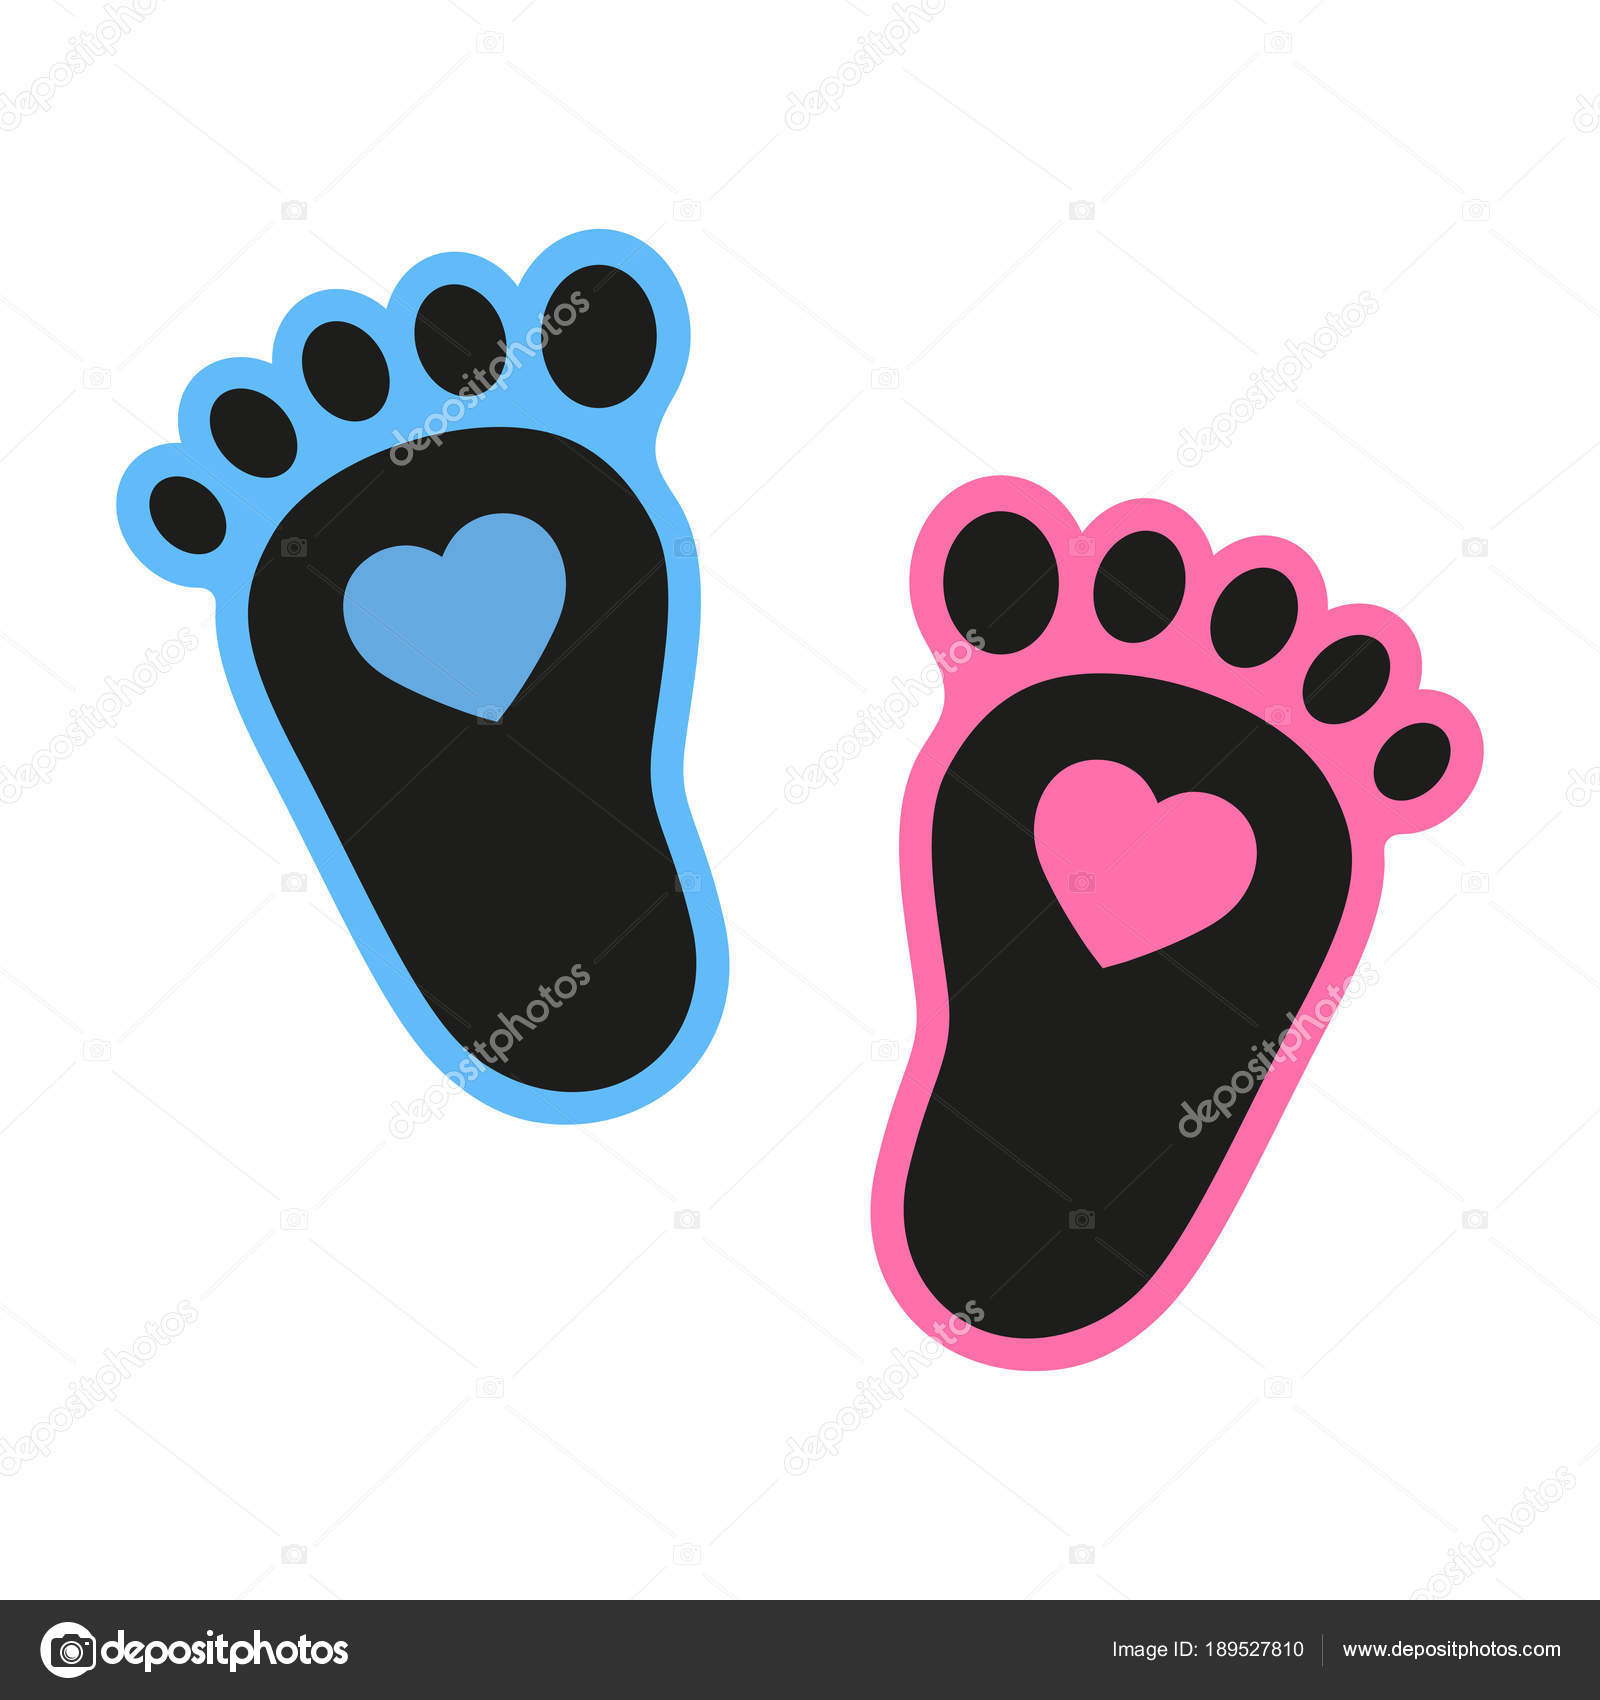 baby footprints icon heart abstract concept flat design illustration